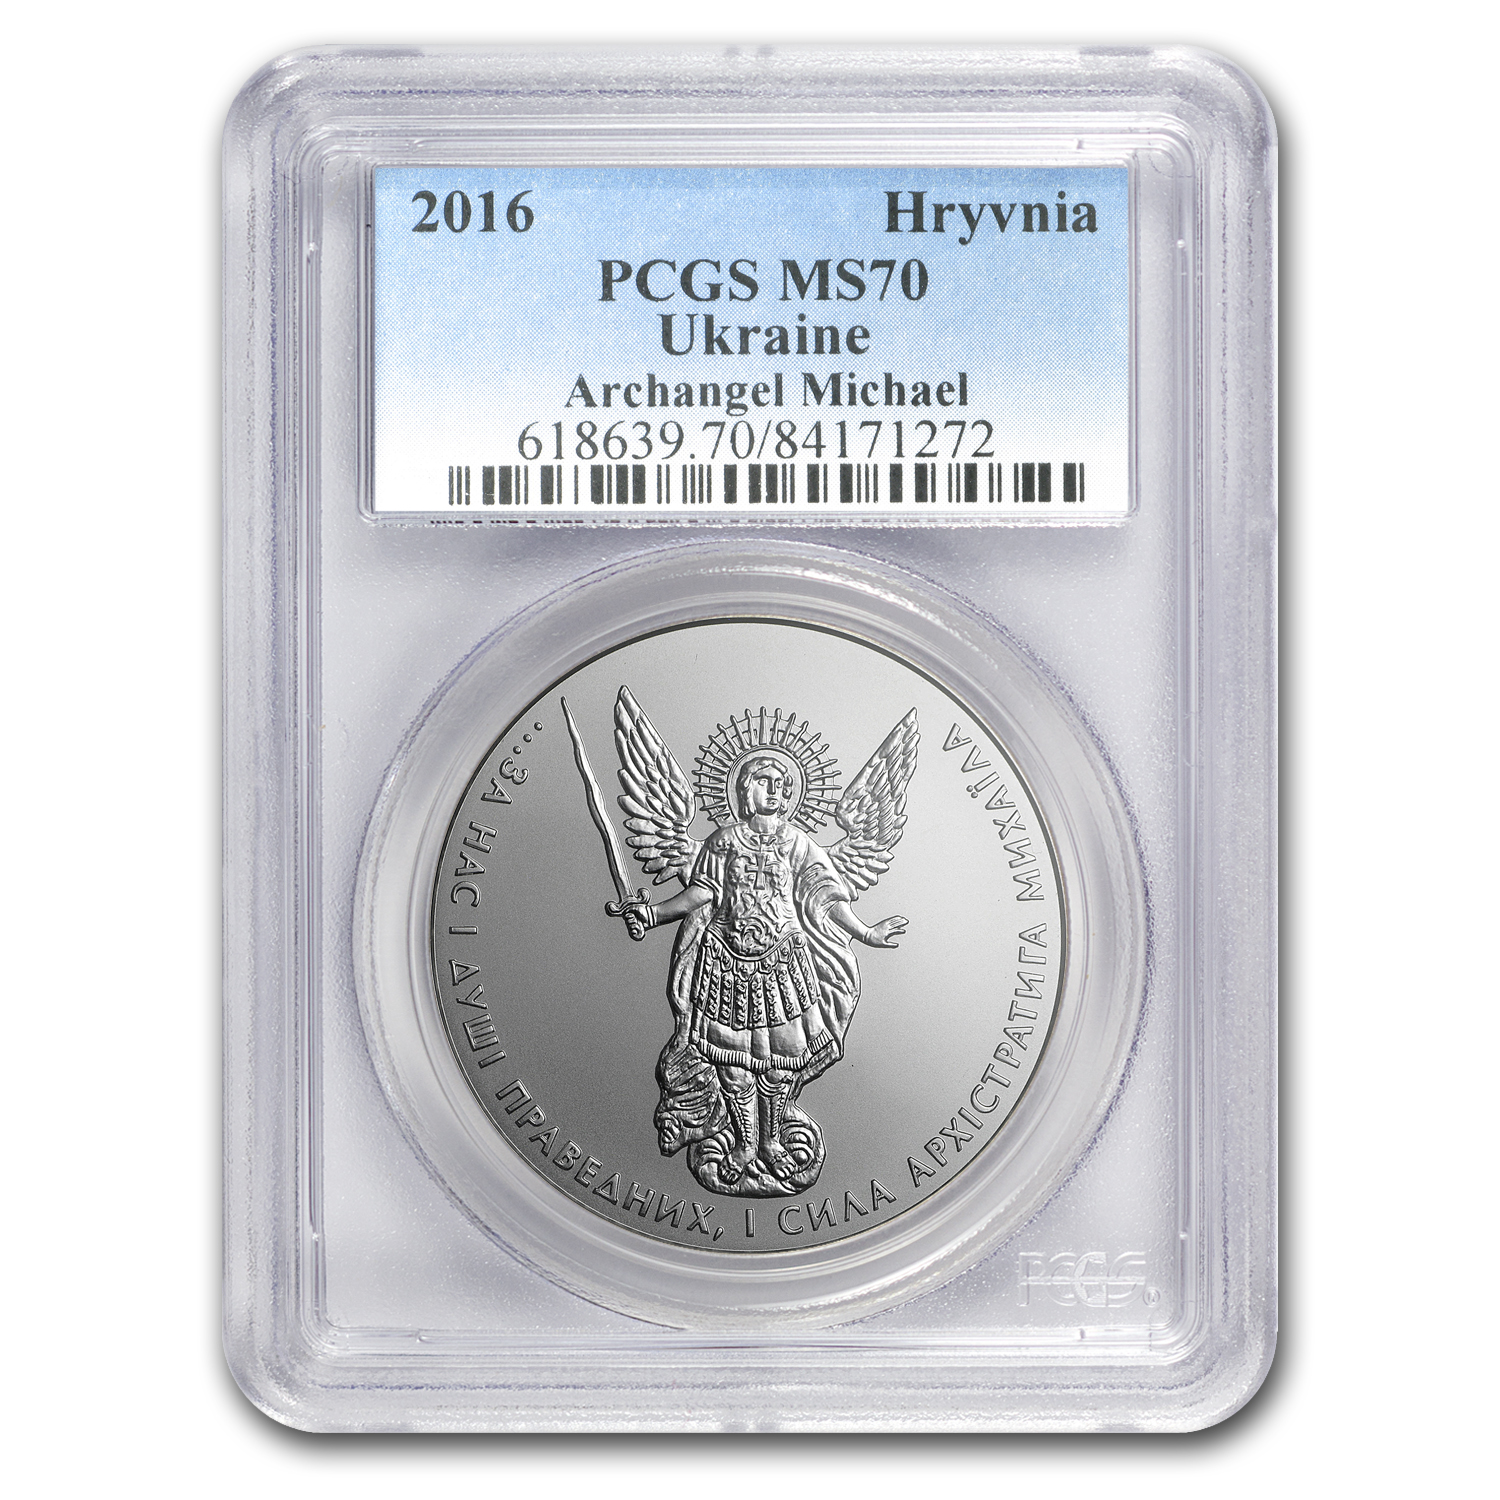 2016 Ukraine 1 oz Silver Archangel Michael MS-70 PCGS